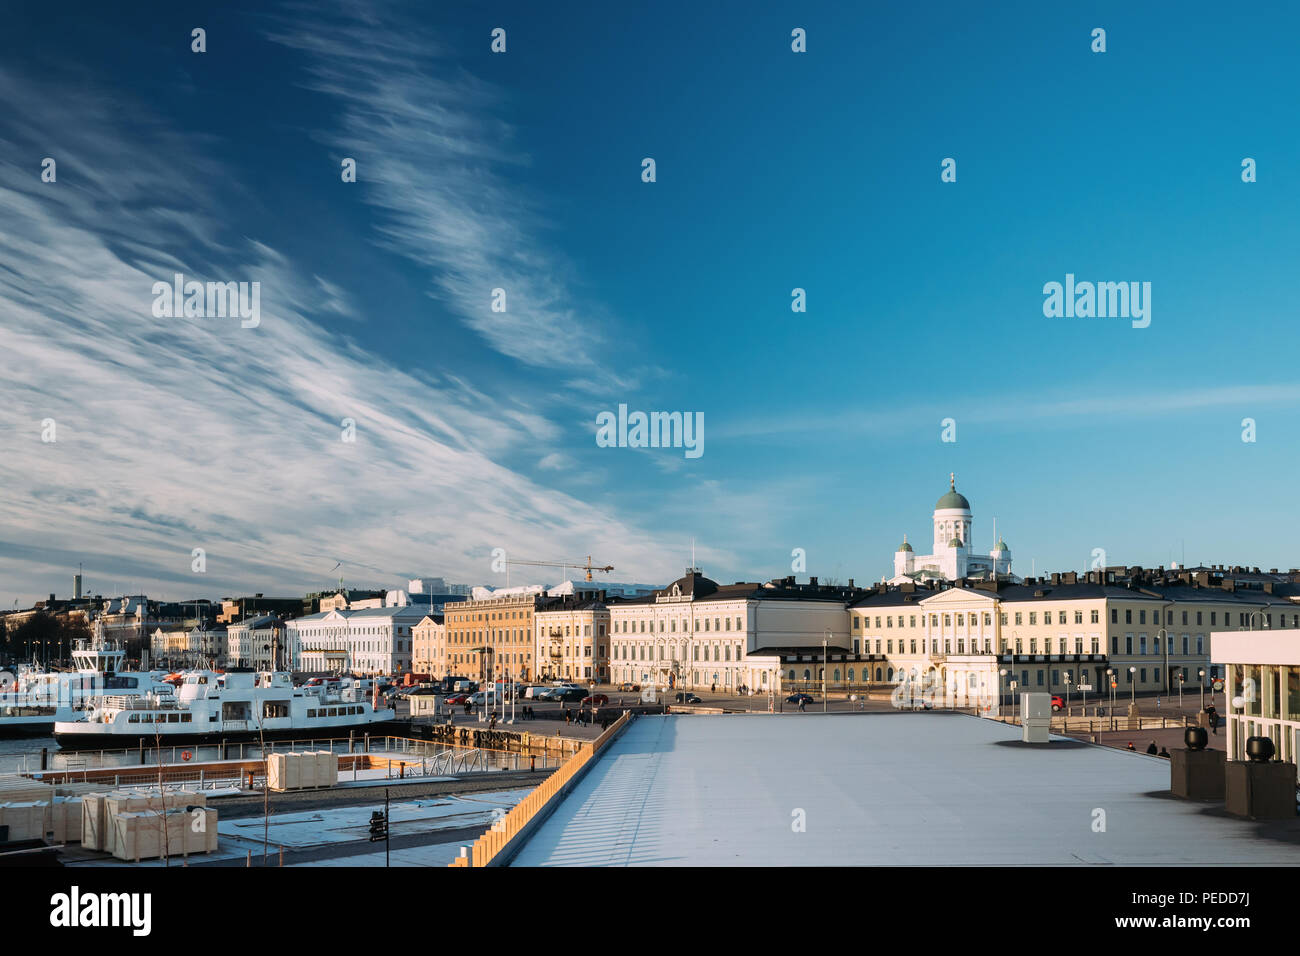 Helsinki, Finland. View Of Street With Presidential Palace And Helsinki Cathedral In Sunny Winter Day. - Stock Image